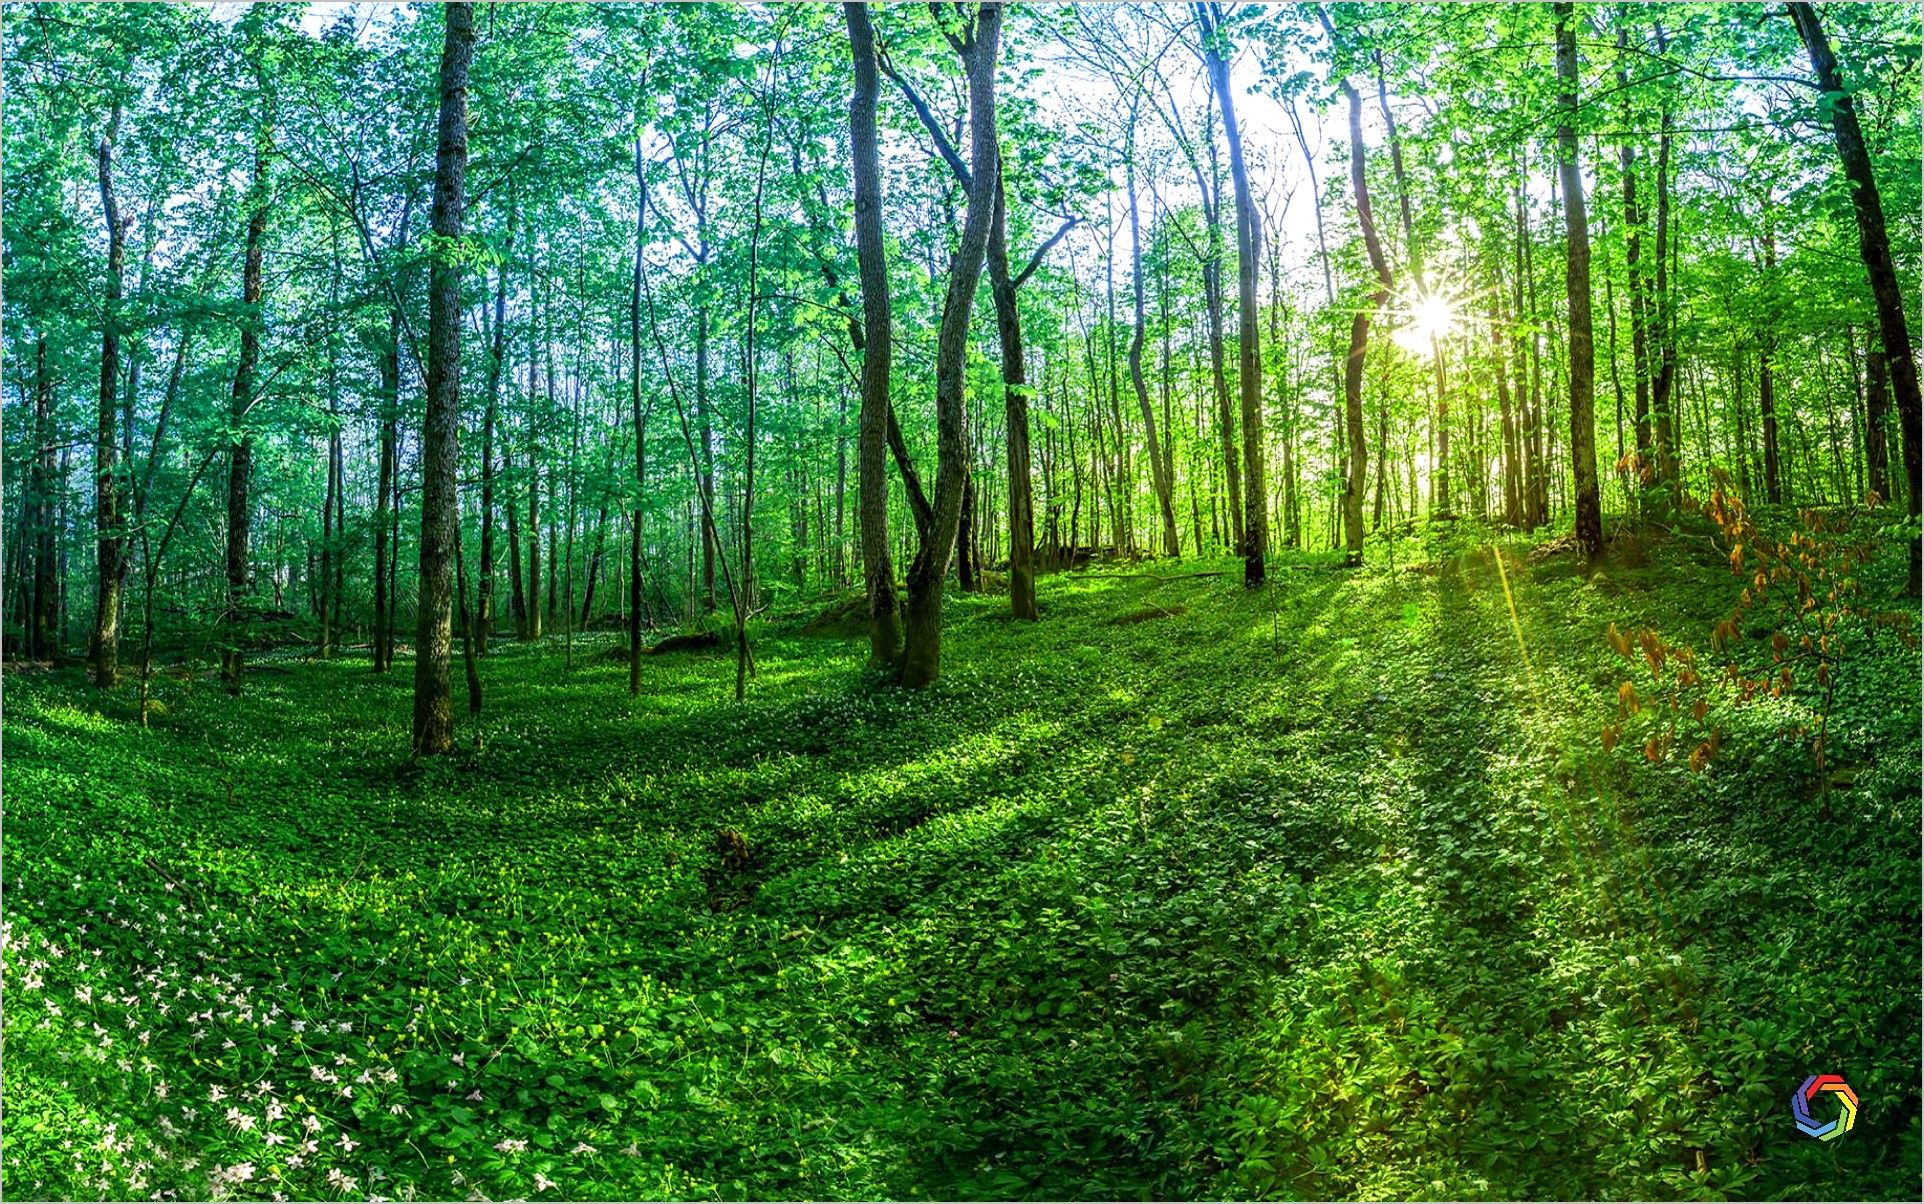 4k Wallpaper Nature Green In 2020 Nature Backgrounds Background Hd Wallpaper Green Nature Wallpaper